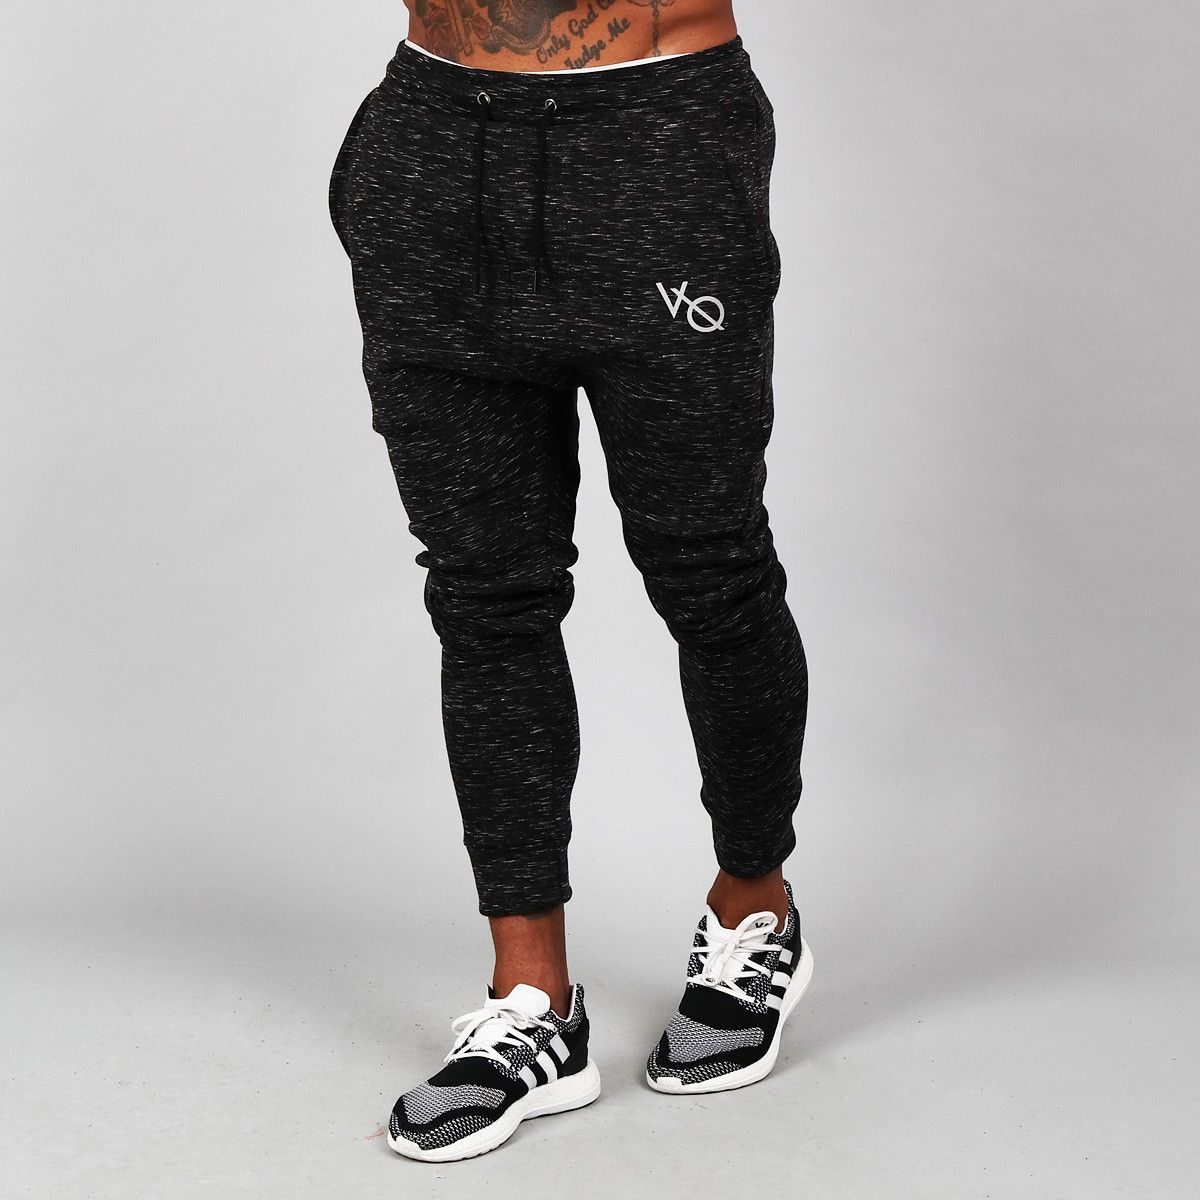 7687cd692 Vanquish Fitness Ultra Flux Tapered Sweatpants in Marbled Black ...